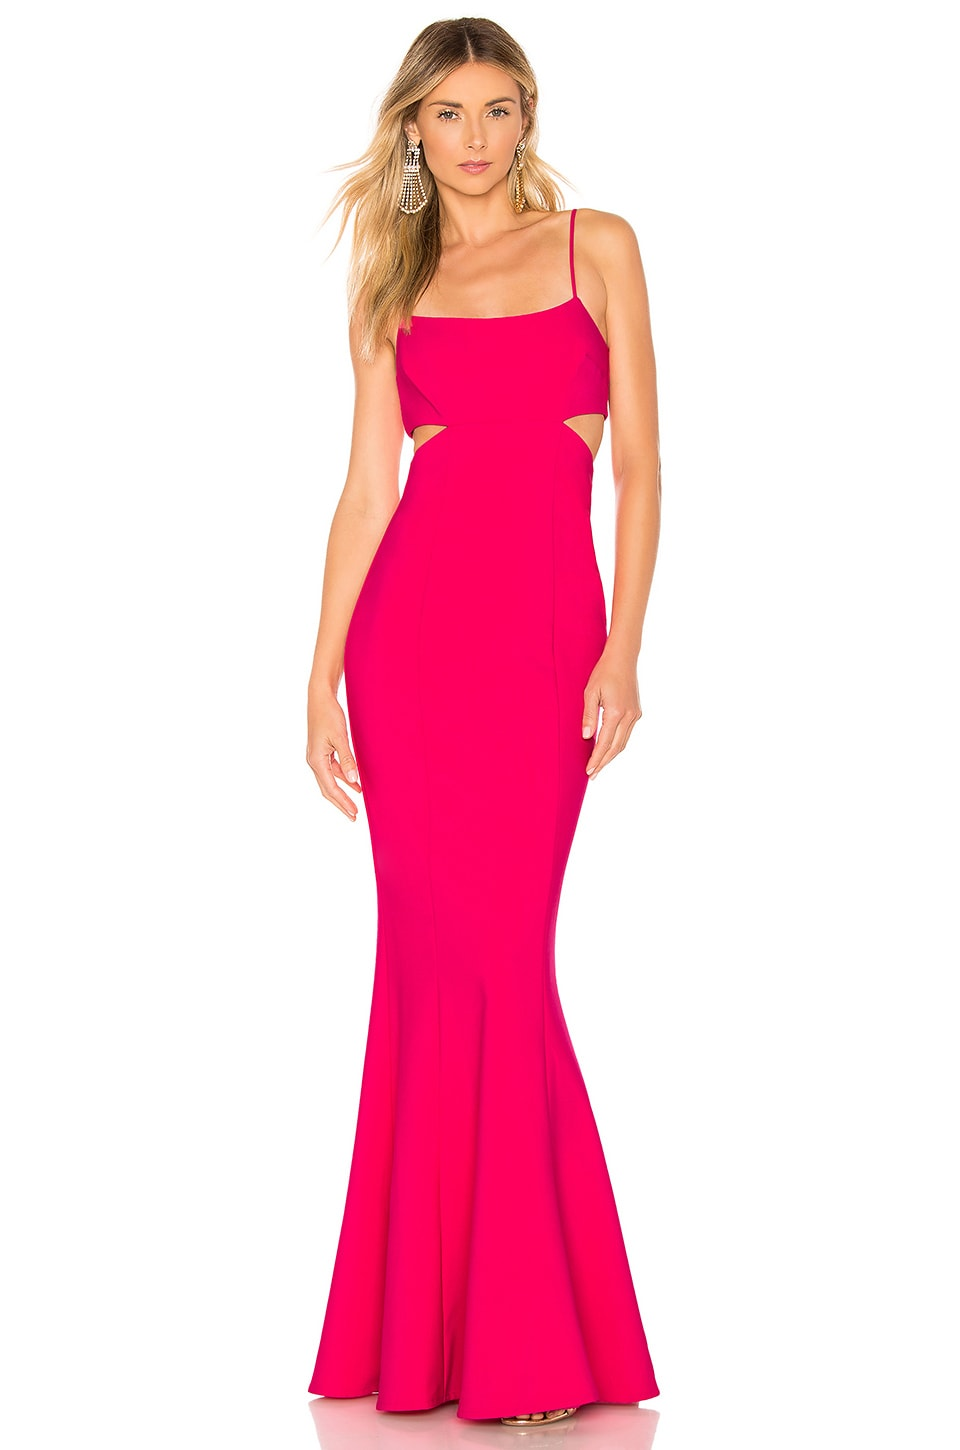 LIKELY Tamarelli Gown in Fuchsia